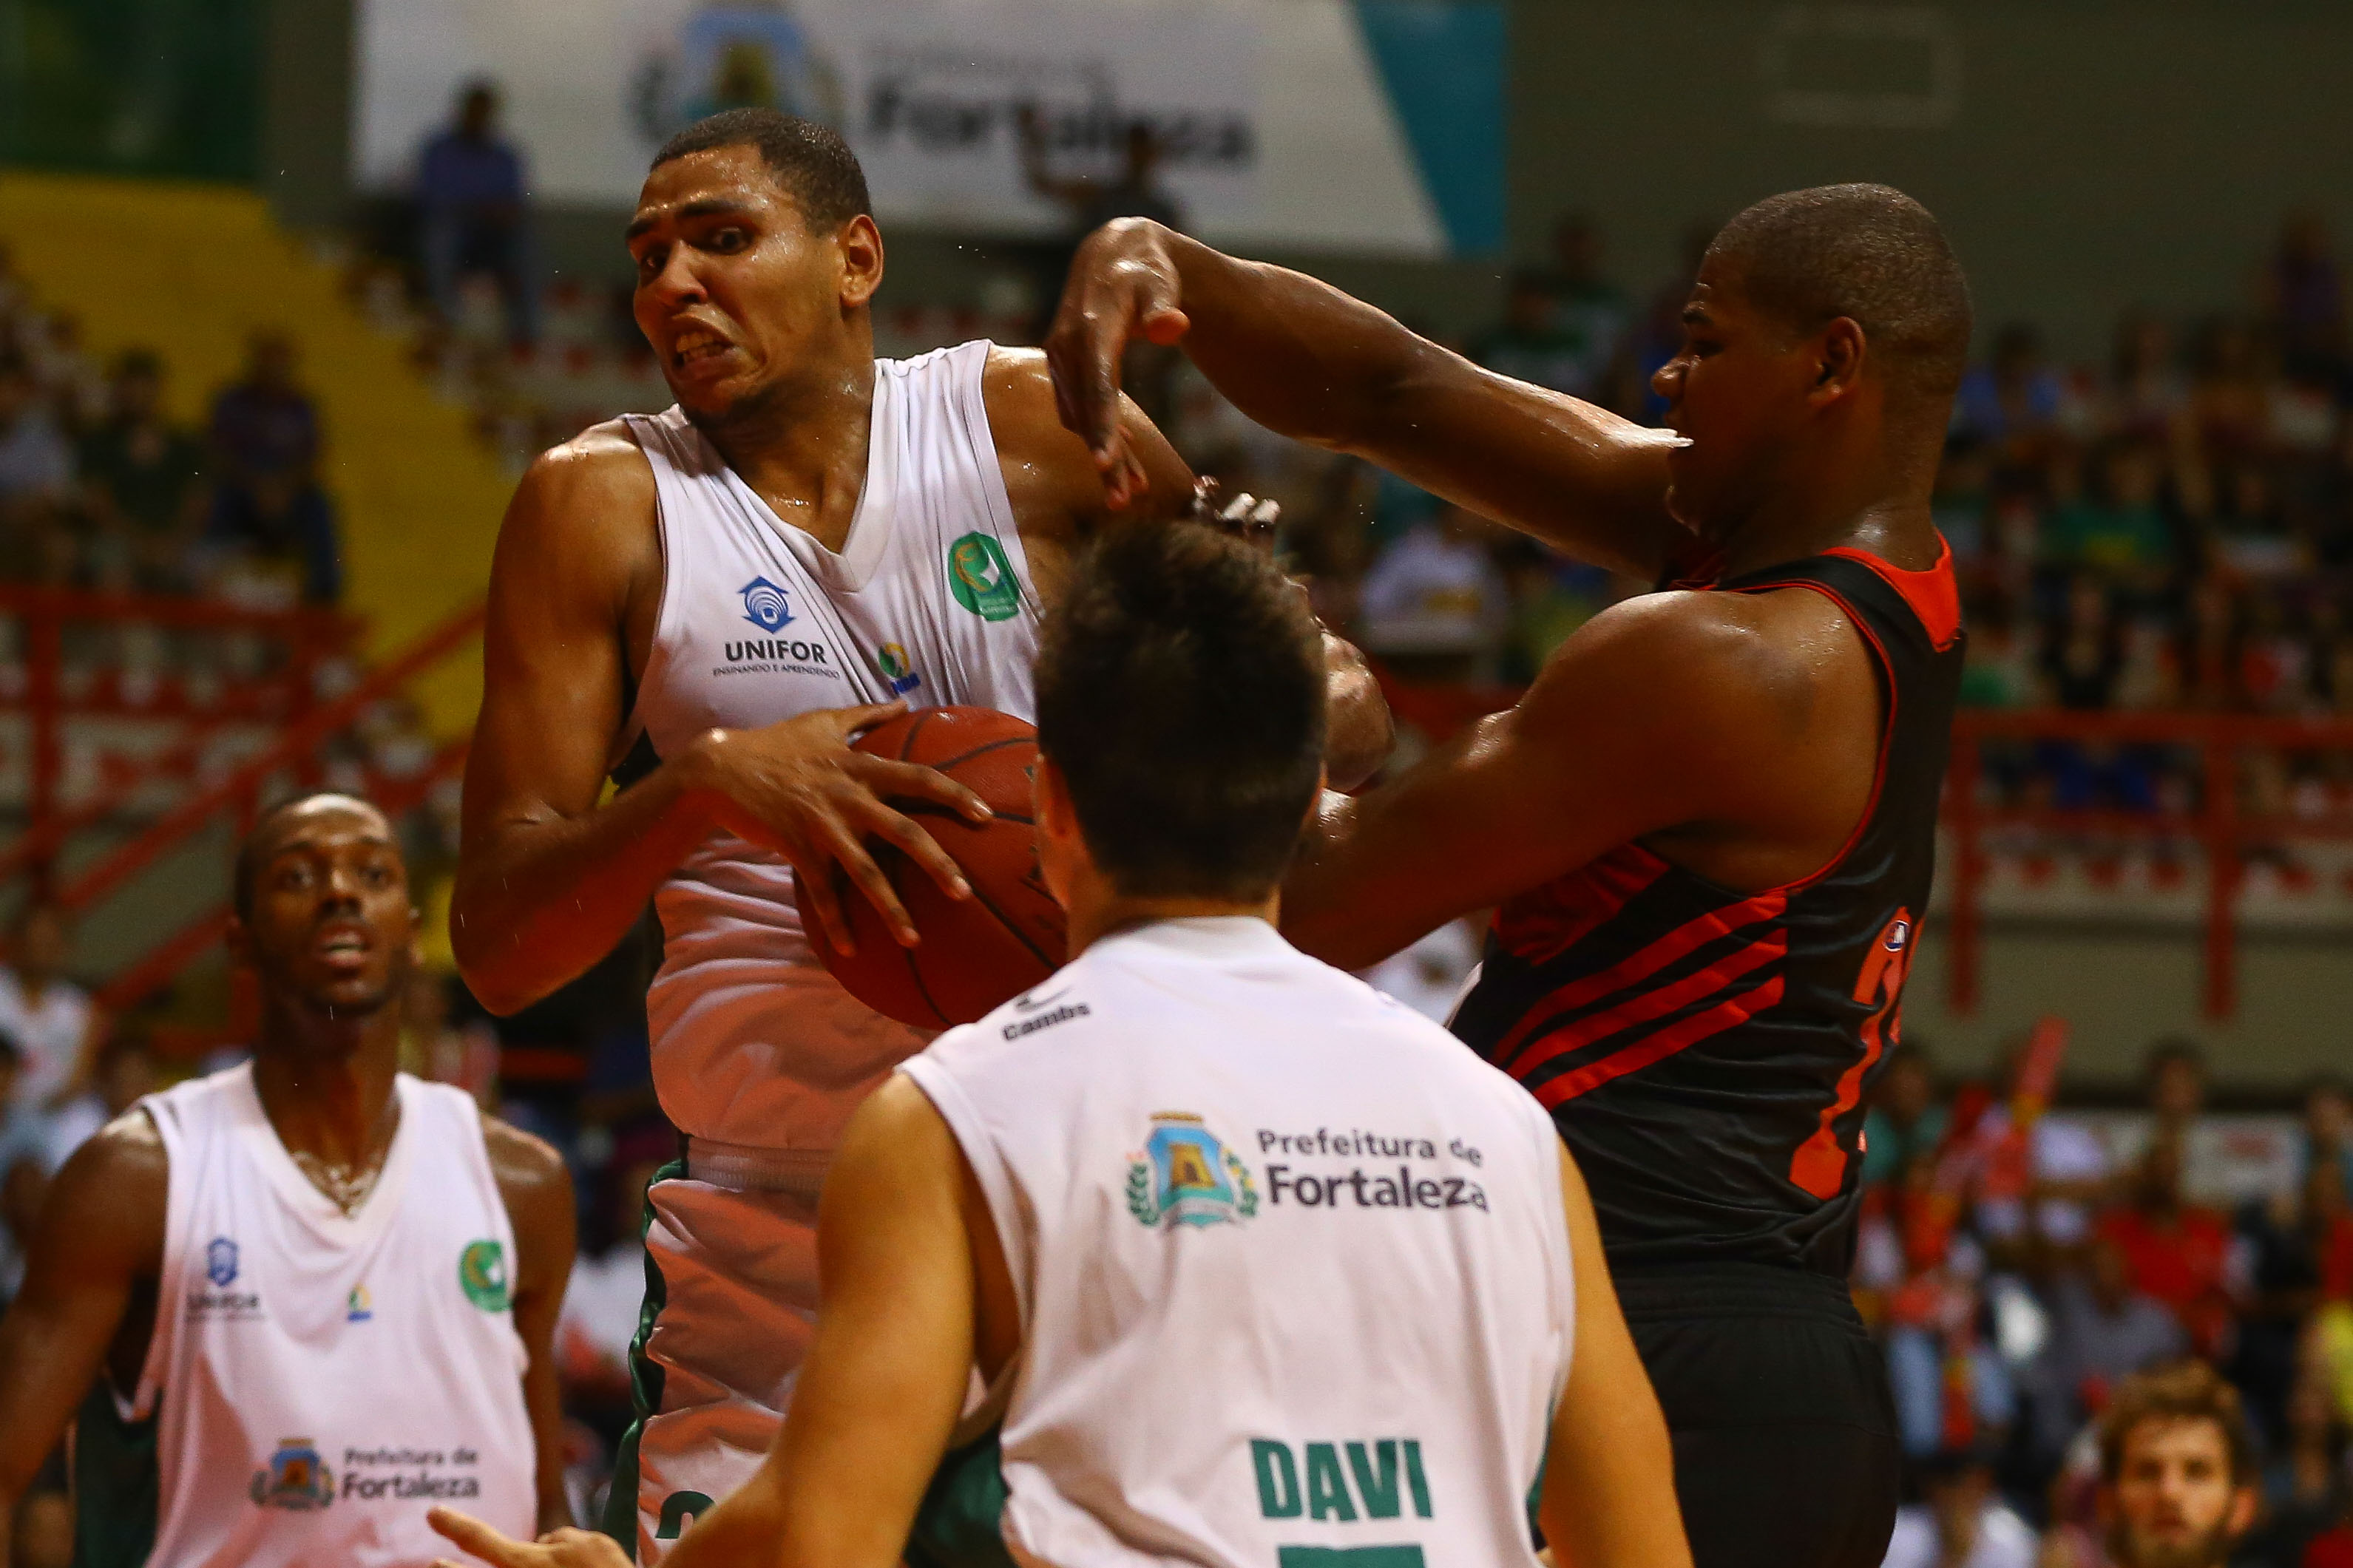 Fortaleza (CE) - Final Four da LDB